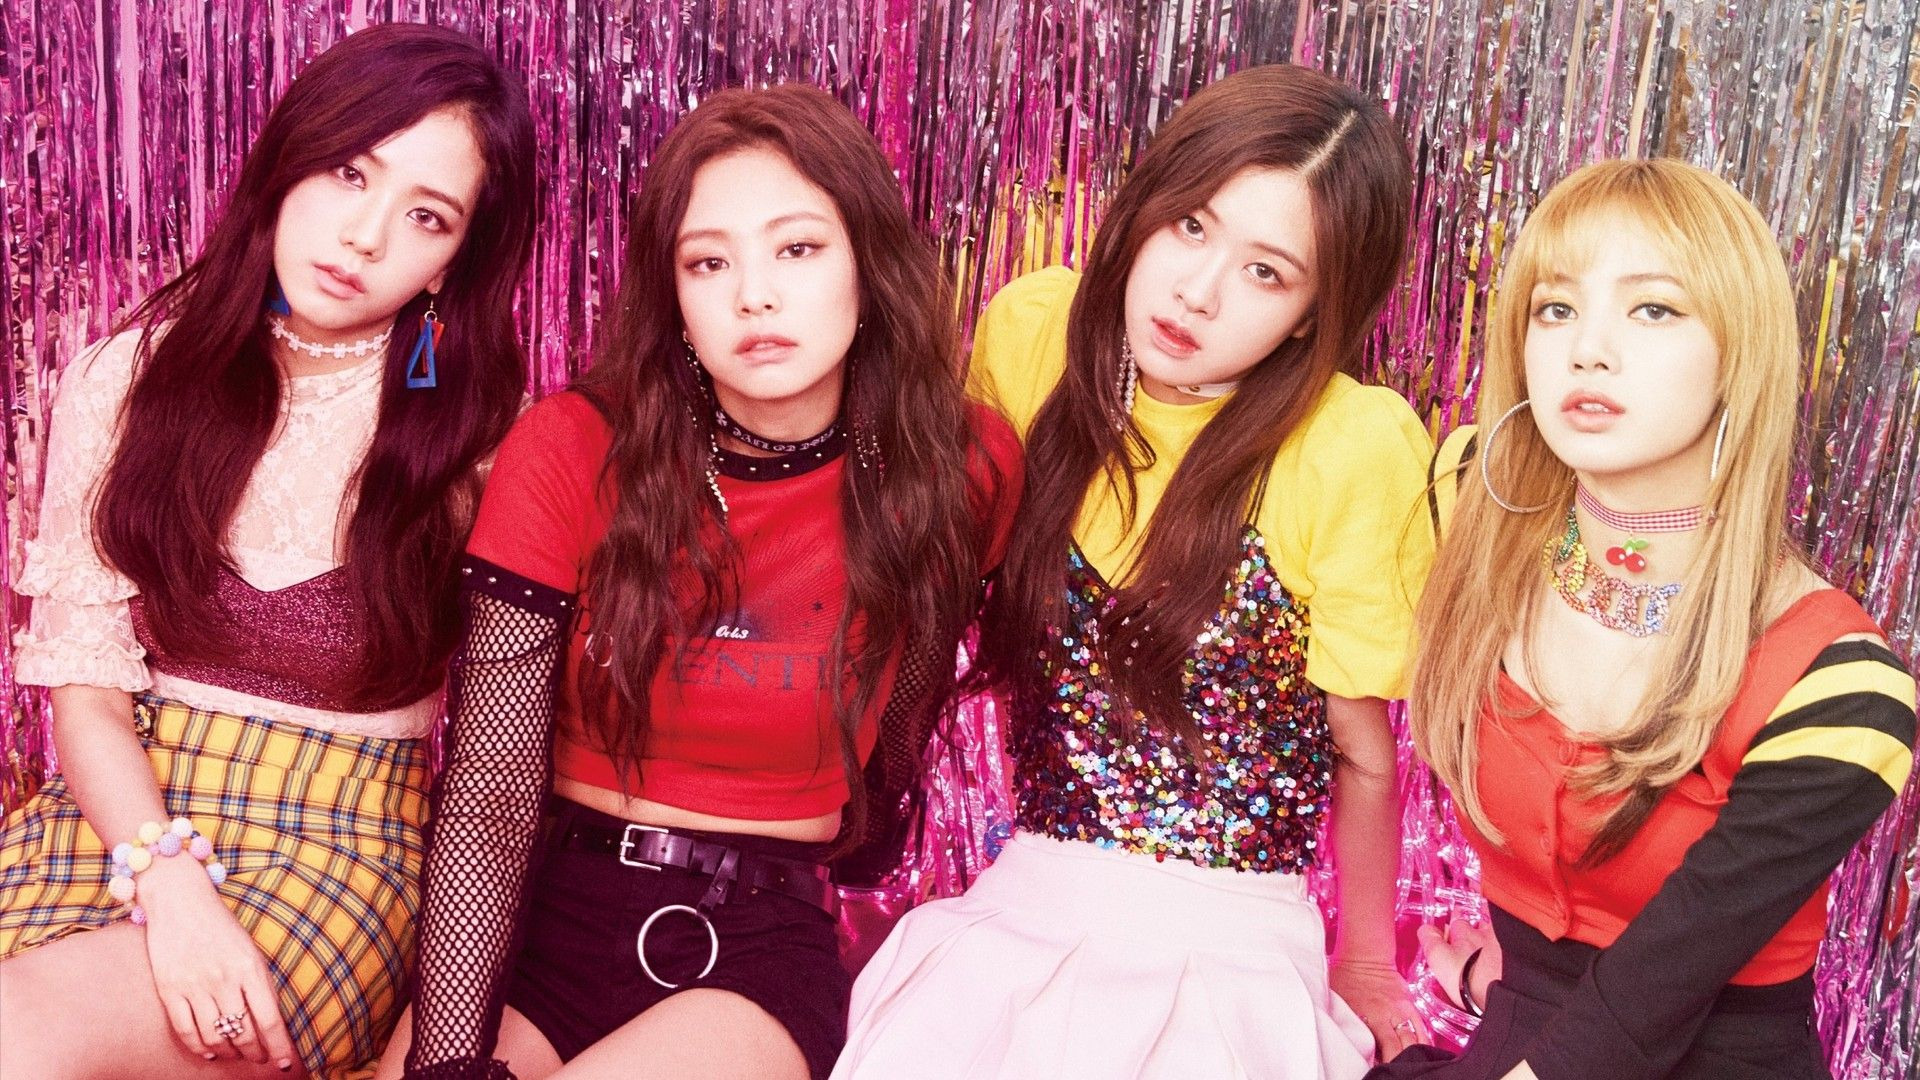 Blackpink Wallpaper HD Blackpink, Black pink kpop